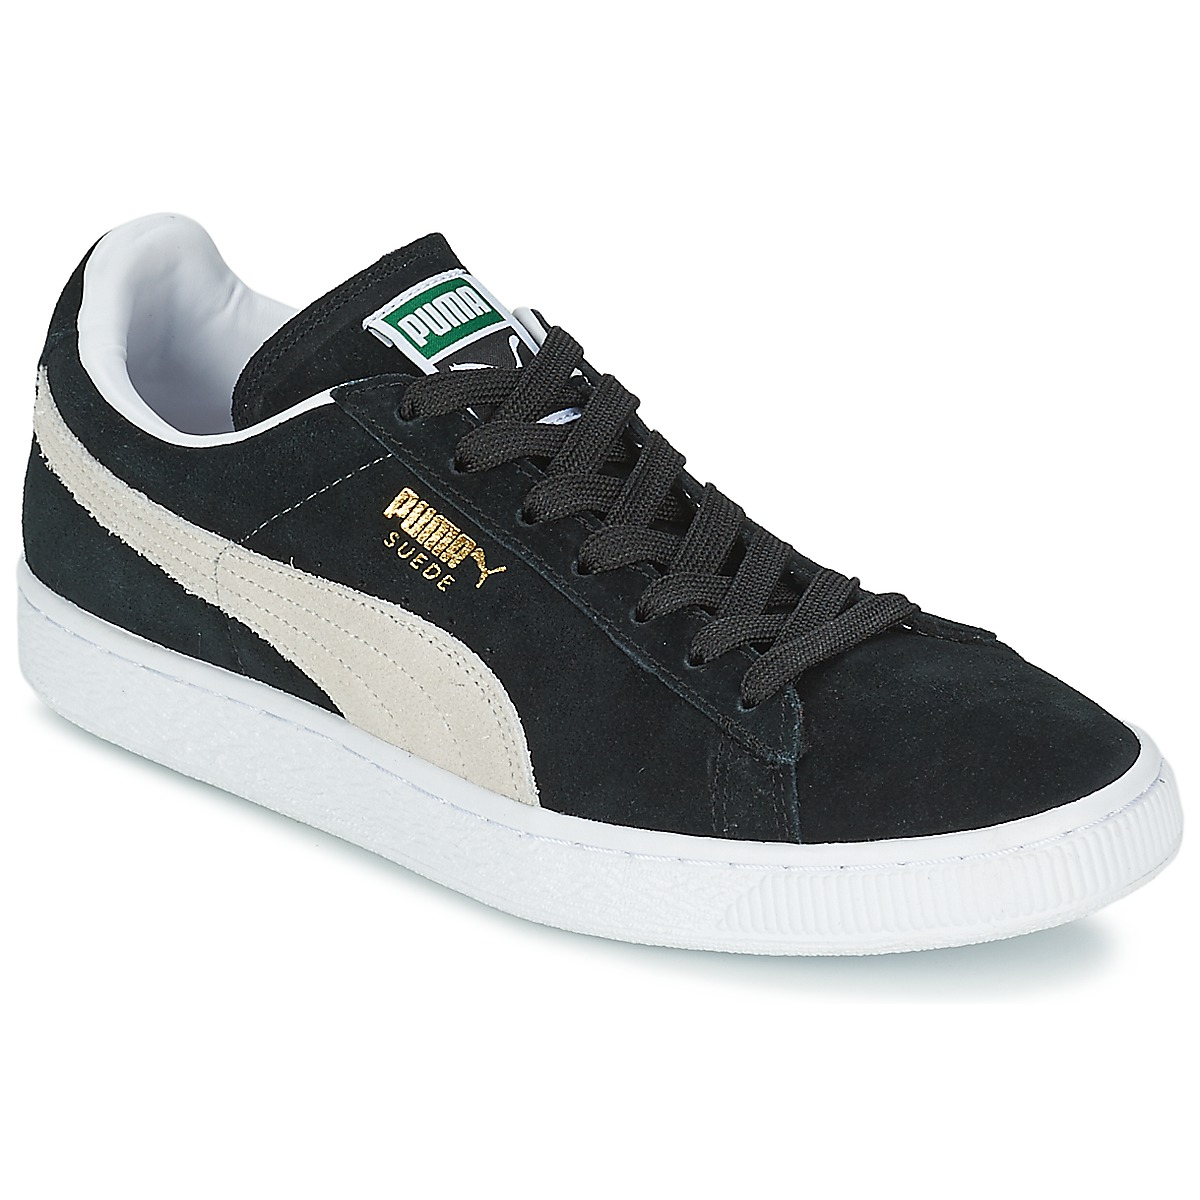 Puma Puma Vetements ChaussuresSacsVetementsAccessoiresSous Vetements ChaussuresSacsVetementsAccessoiresSous ChaussuresSacsVetementsAccessoiresSous Puma Puma ChaussuresSacsVetementsAccessoiresSous Vetements Vetements Vetements ChaussuresSacsVetementsAccessoiresSous Puma 80knPwO